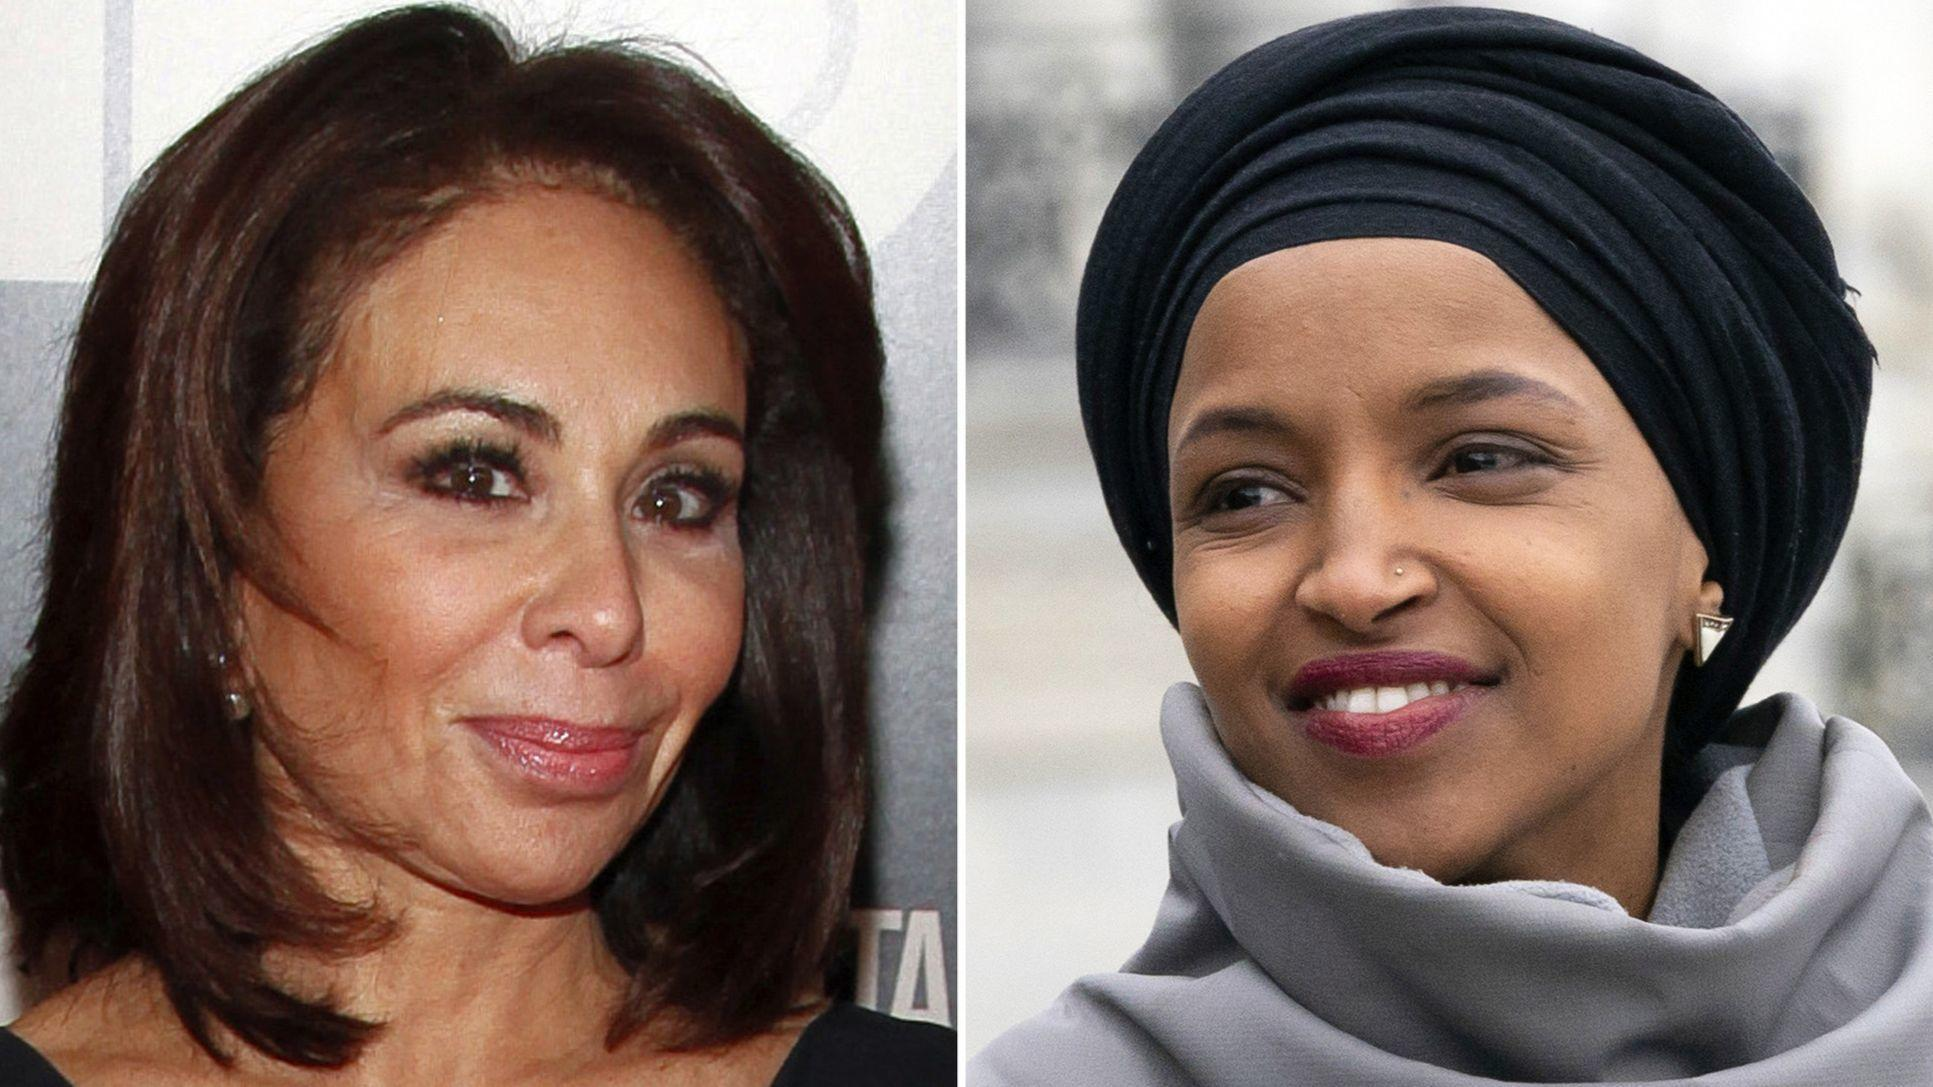 Fox News pulls Jeanine Pirro's program after hijab remarks